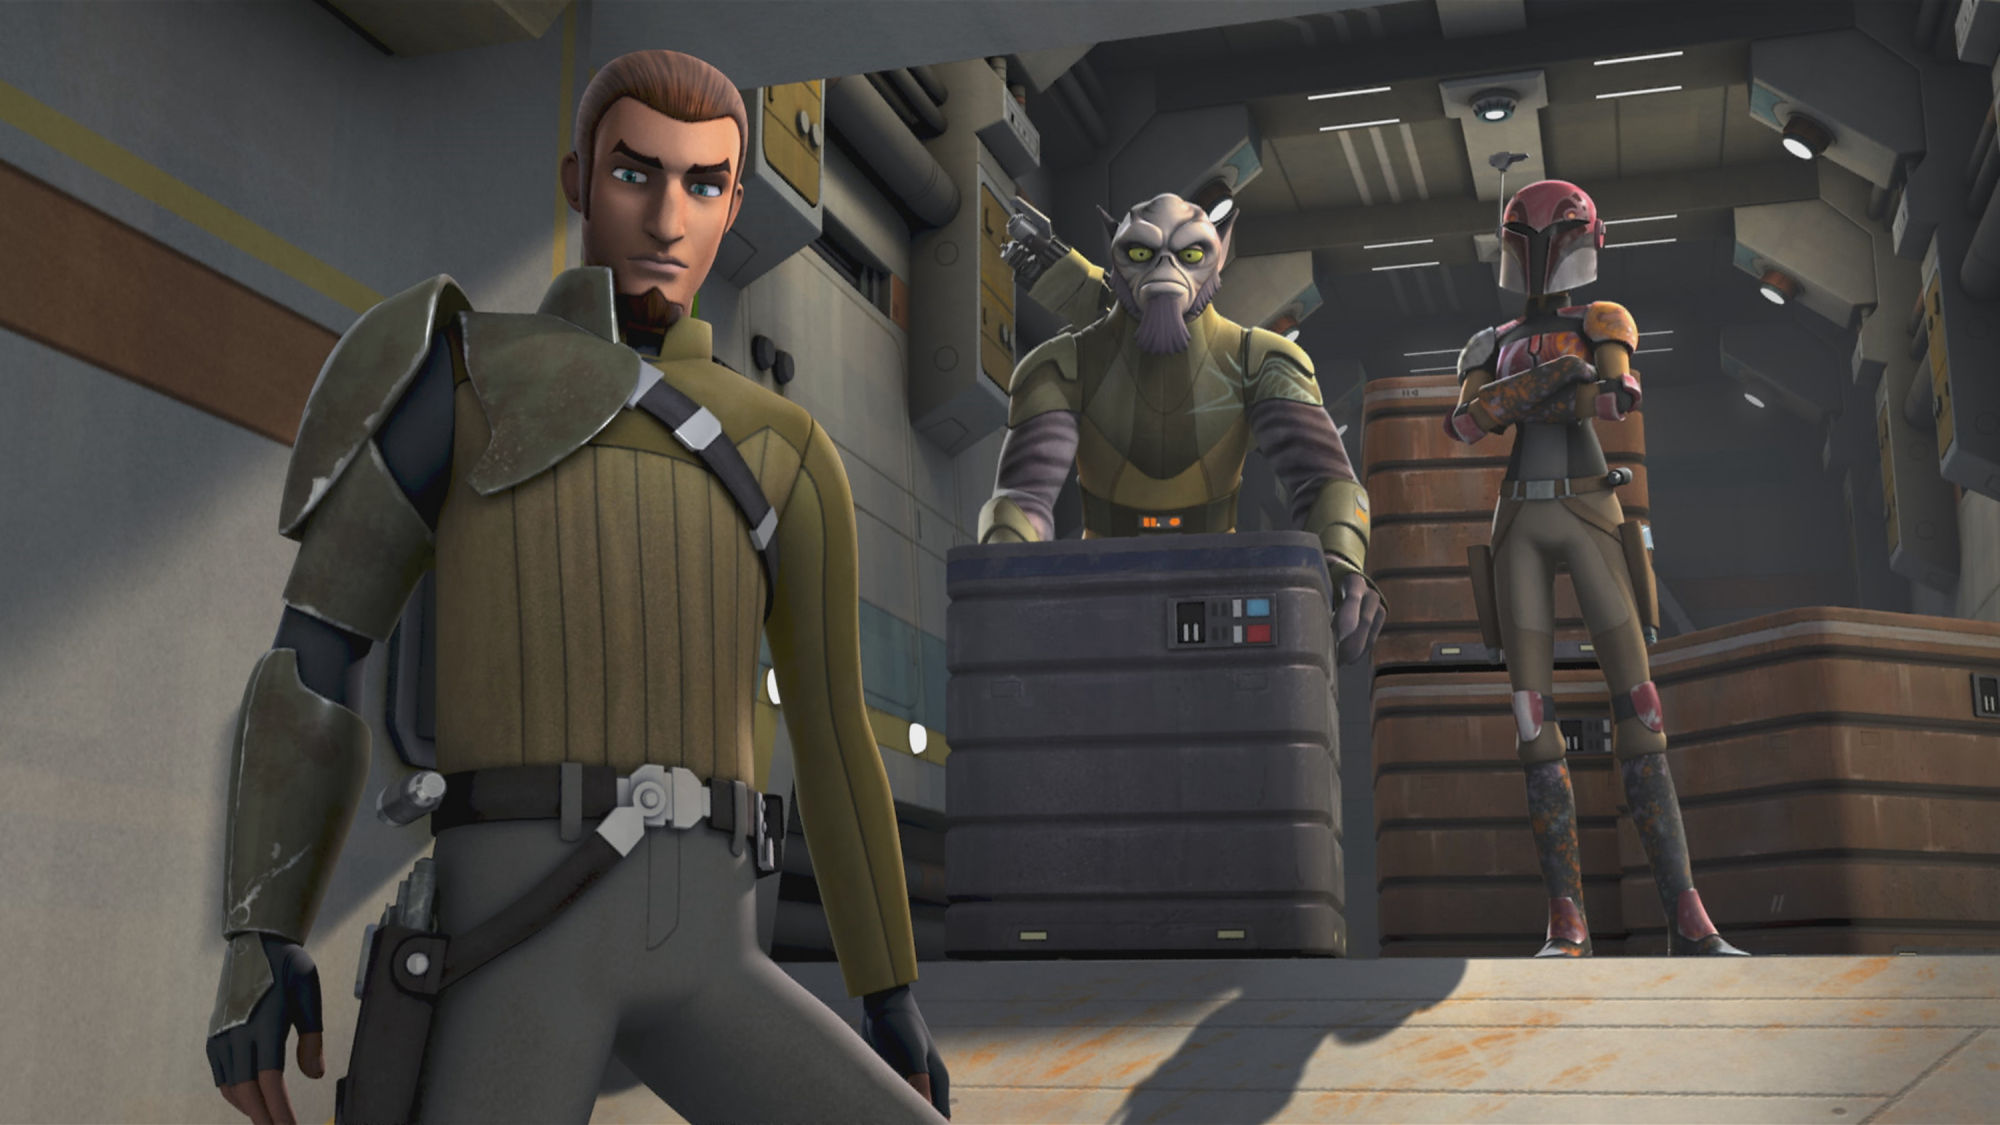 51 Star Wars Rebels Hd Wallpapers Background Images Wallpaper Abyss